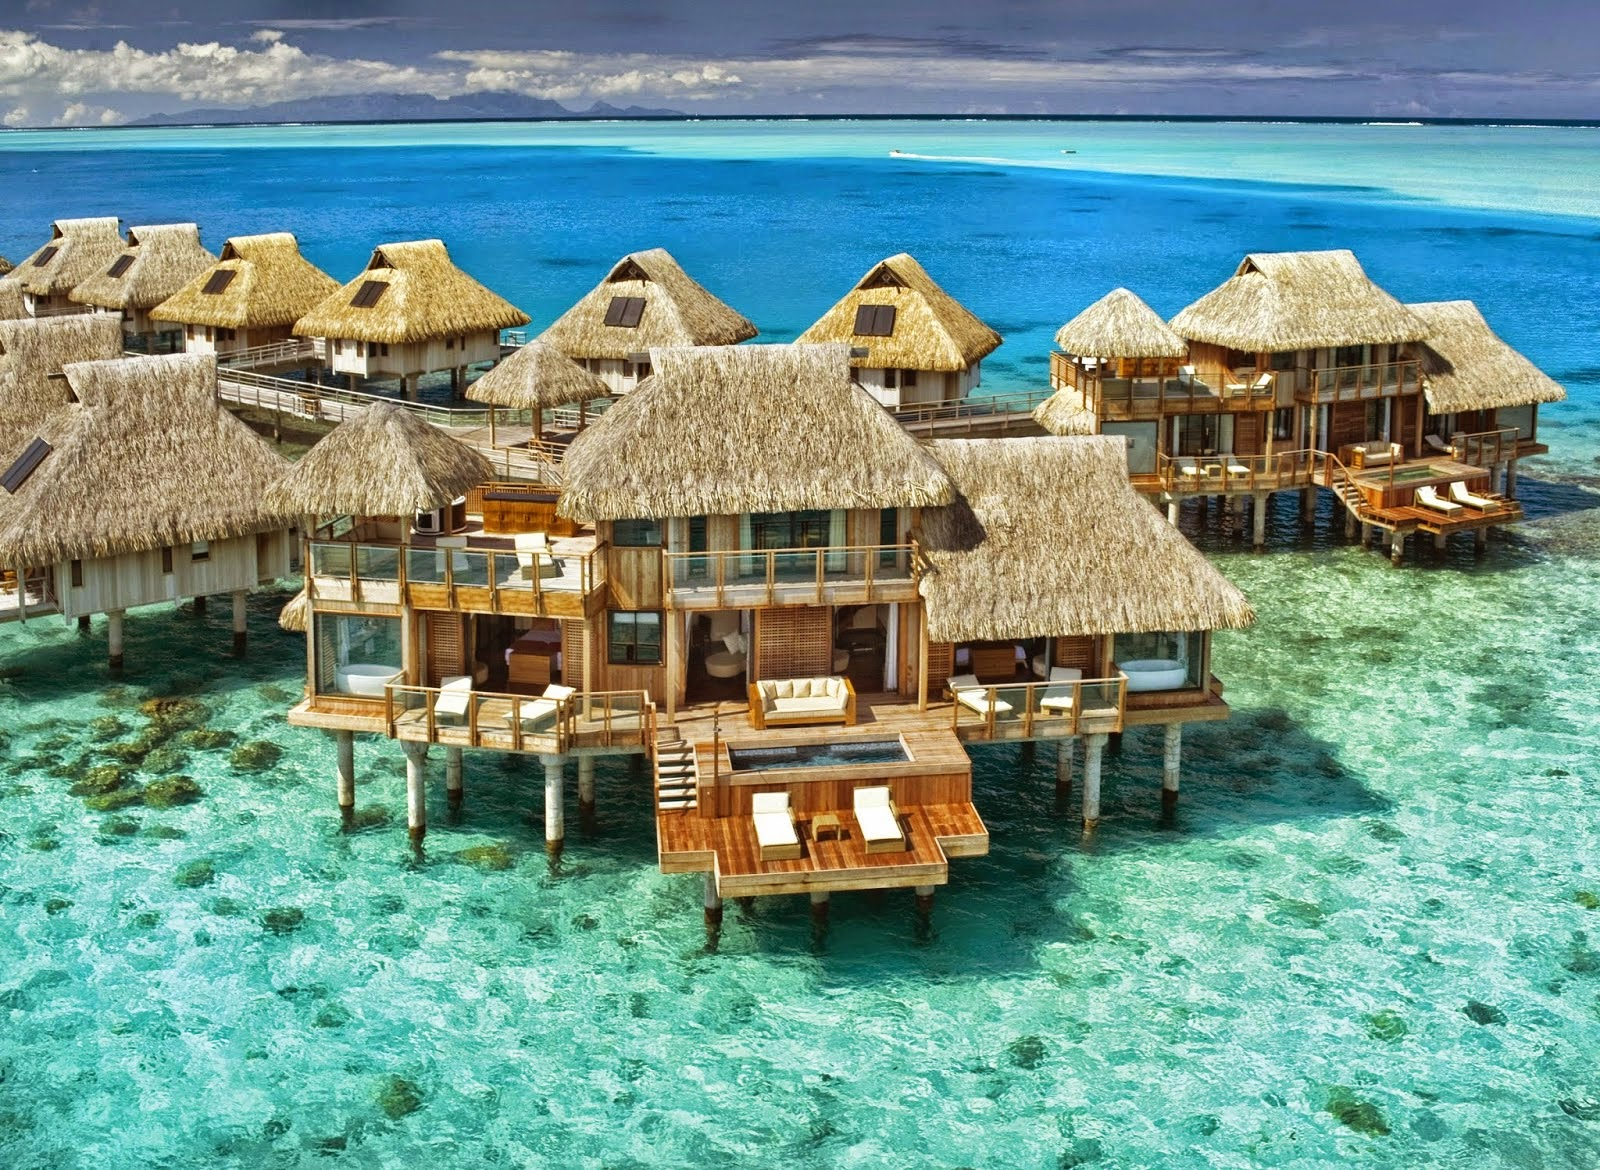 Hilton Bora Bora Honeymoon Destination